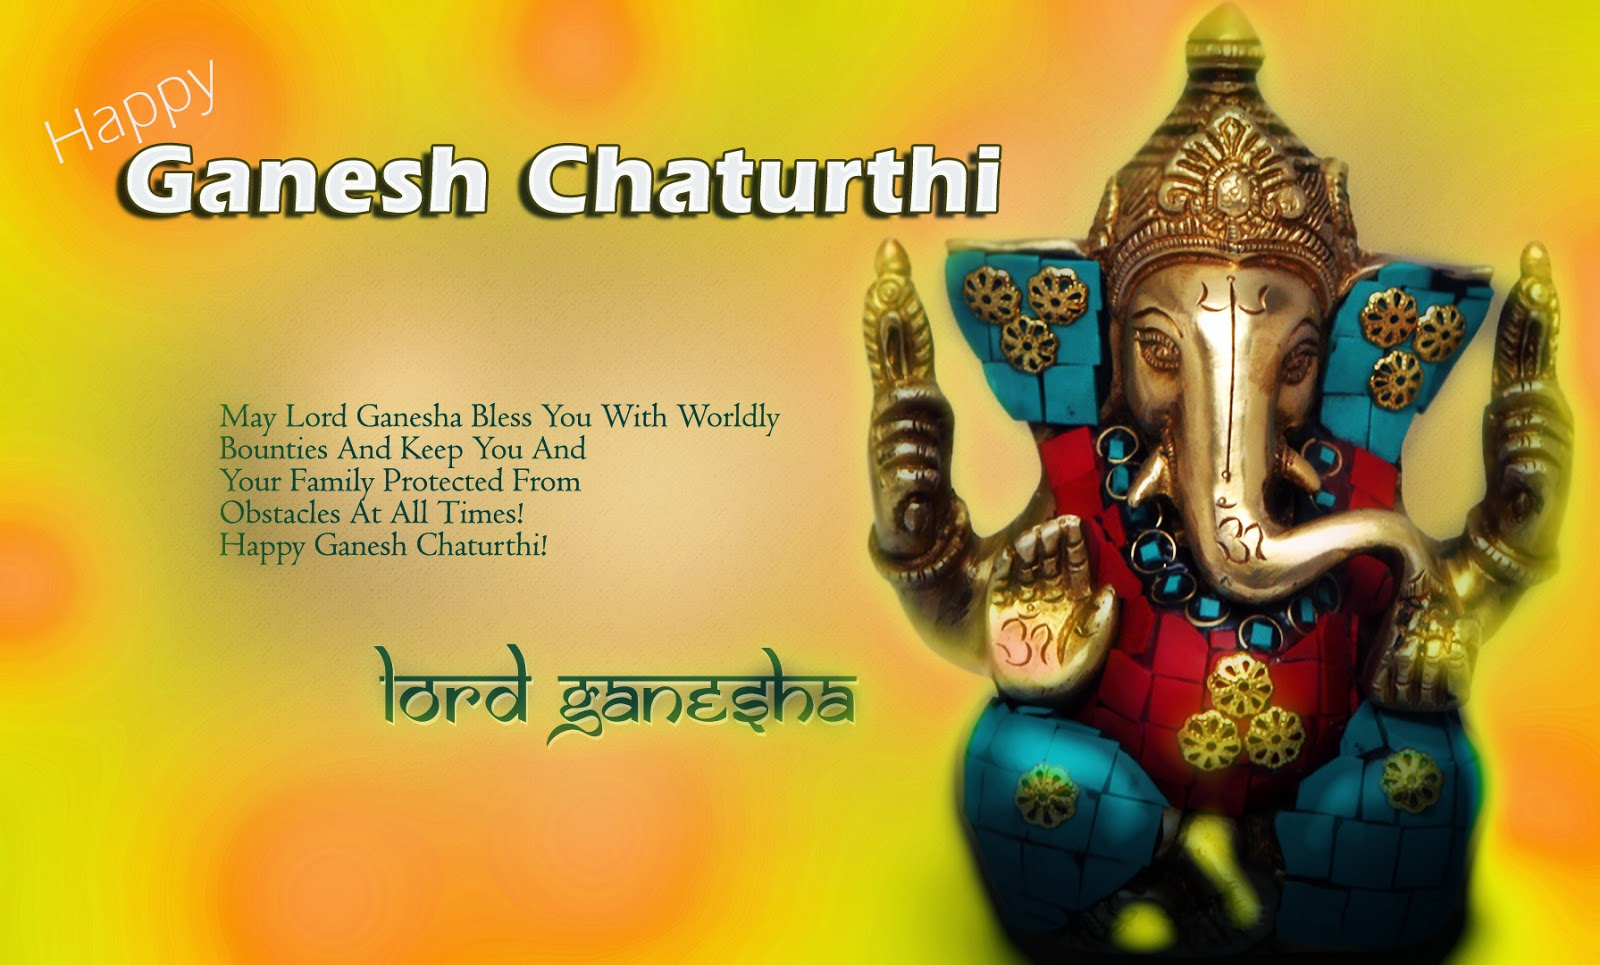 ganesh chaturthi card hd quality,creative ganesh ji wallpaper hd,creative ganpati pic,ganesh design hd for pc,ganesh wallpaper in hd,ganpati hd wallpapers 1080p,ganpati pic in hd,hd ganesh wallpapers for desktop Download Ganesh Chaturthi creative hd wallpapers is available under Ganesh Chaturthi desktop background Wallpapers category. HD high quality widescreen resolutions for desktop pc free download.